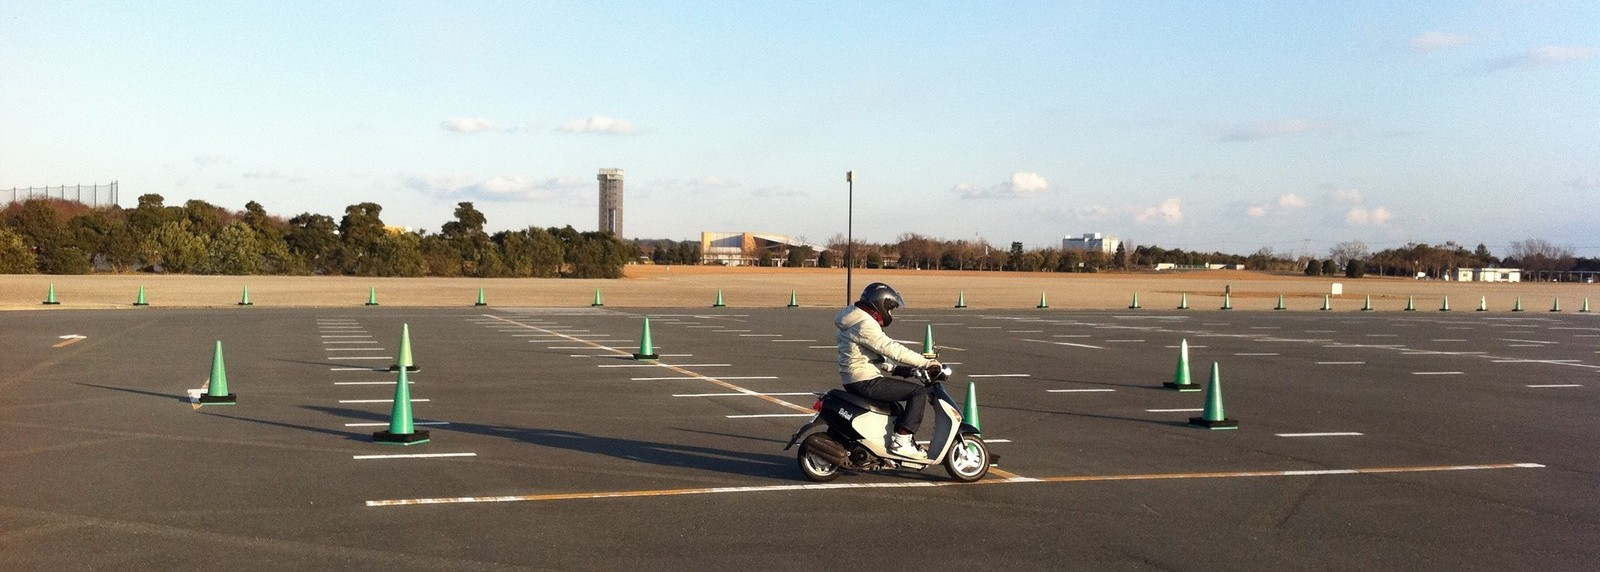 First Experiment of Bikeinformatics (2012.01.13)